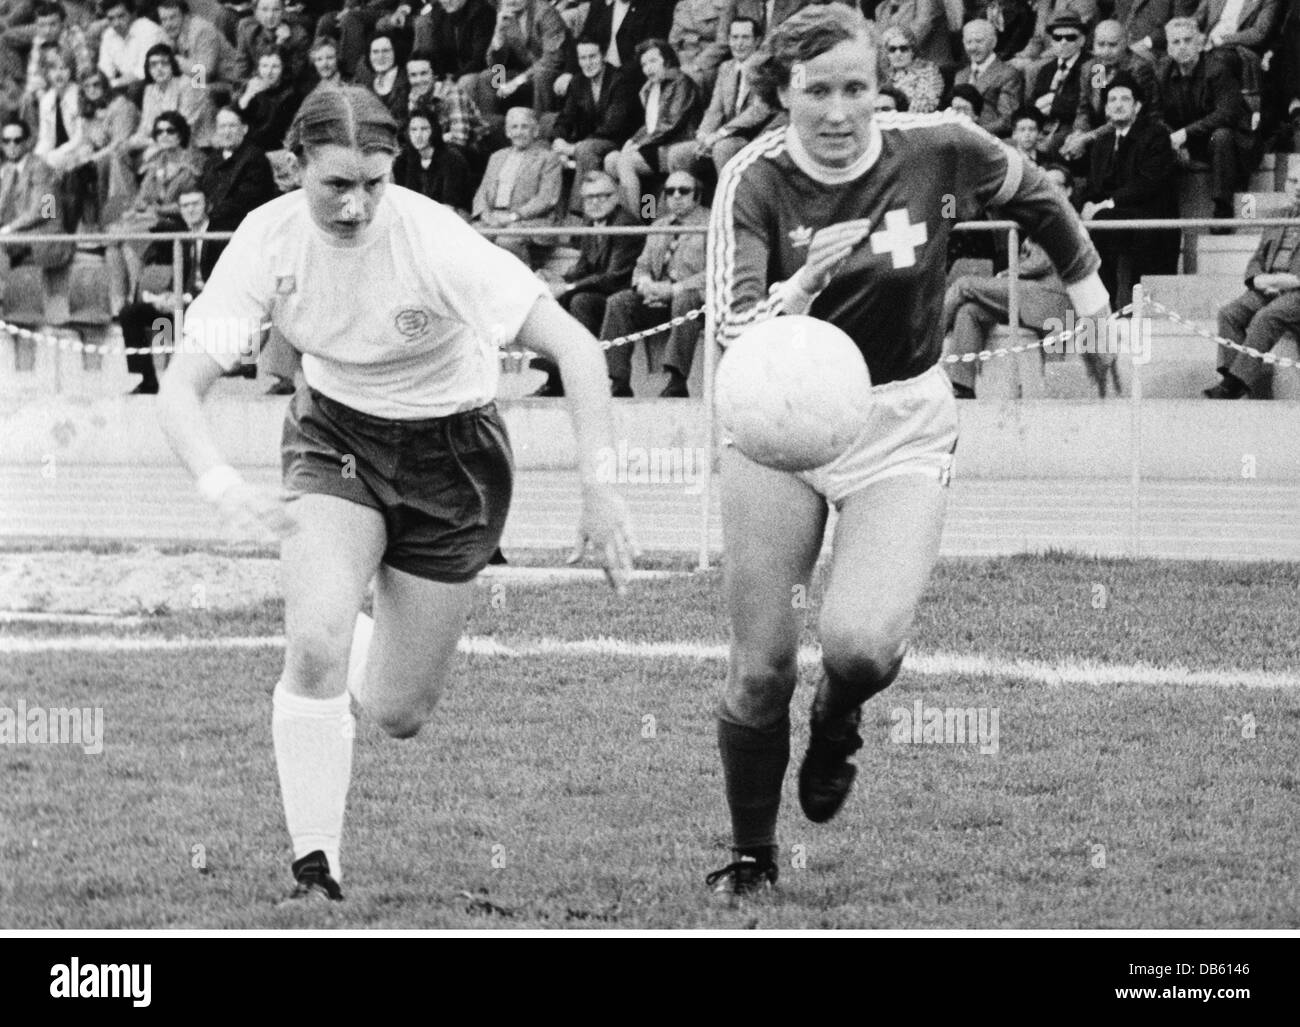 sports, football, women's football, match Switzerland versus England, Basel, 19.4.1975, Additional-Rights-Clearences - Stock Image